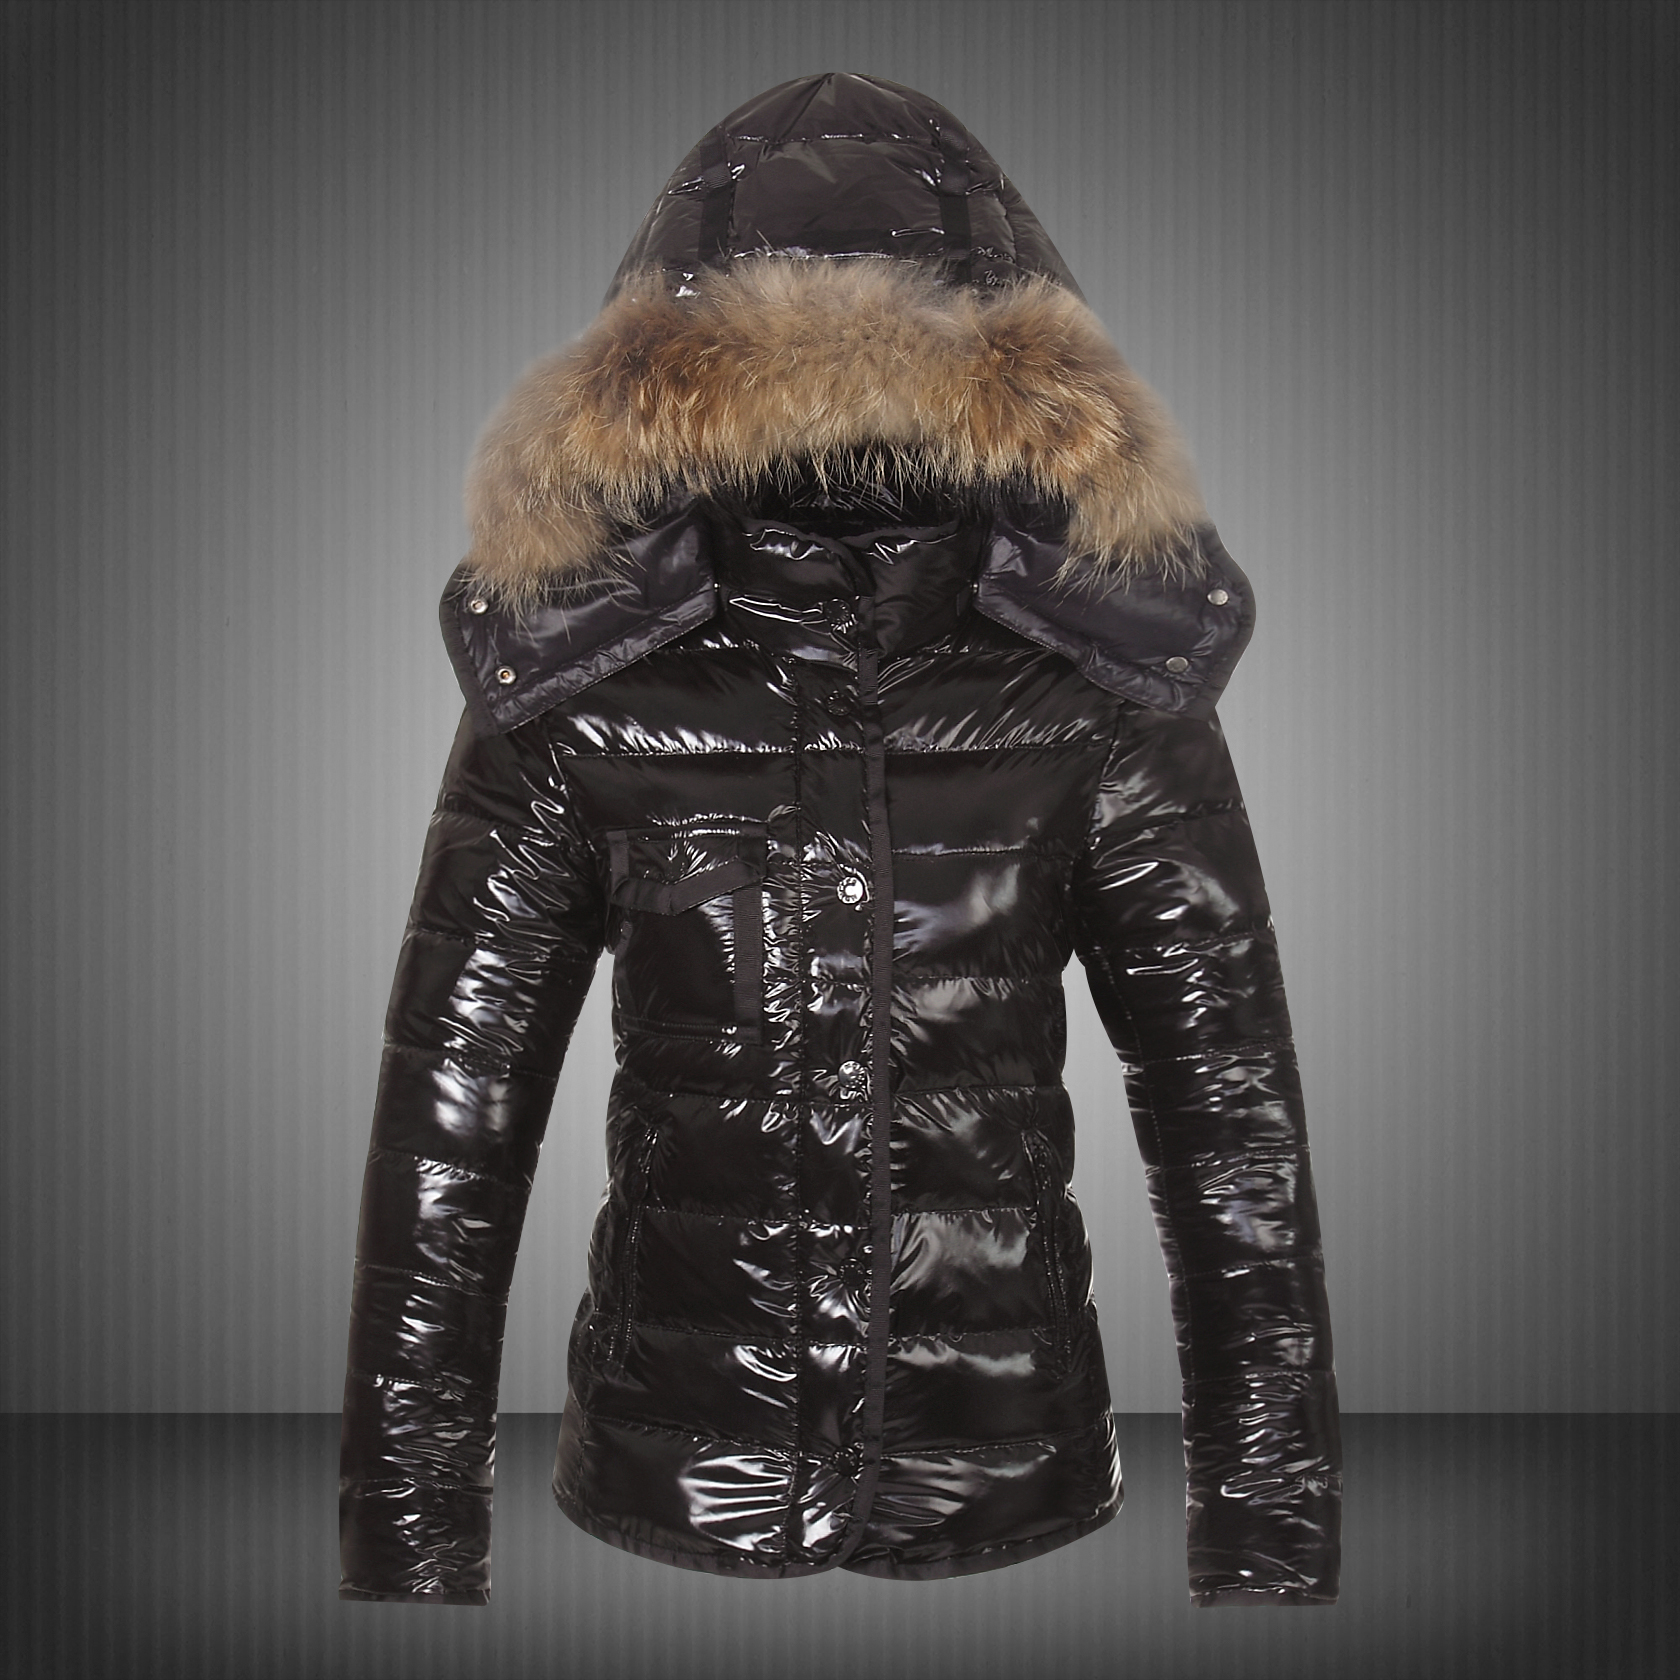 Moncler Jackets For Women Black With Fur Cap UK